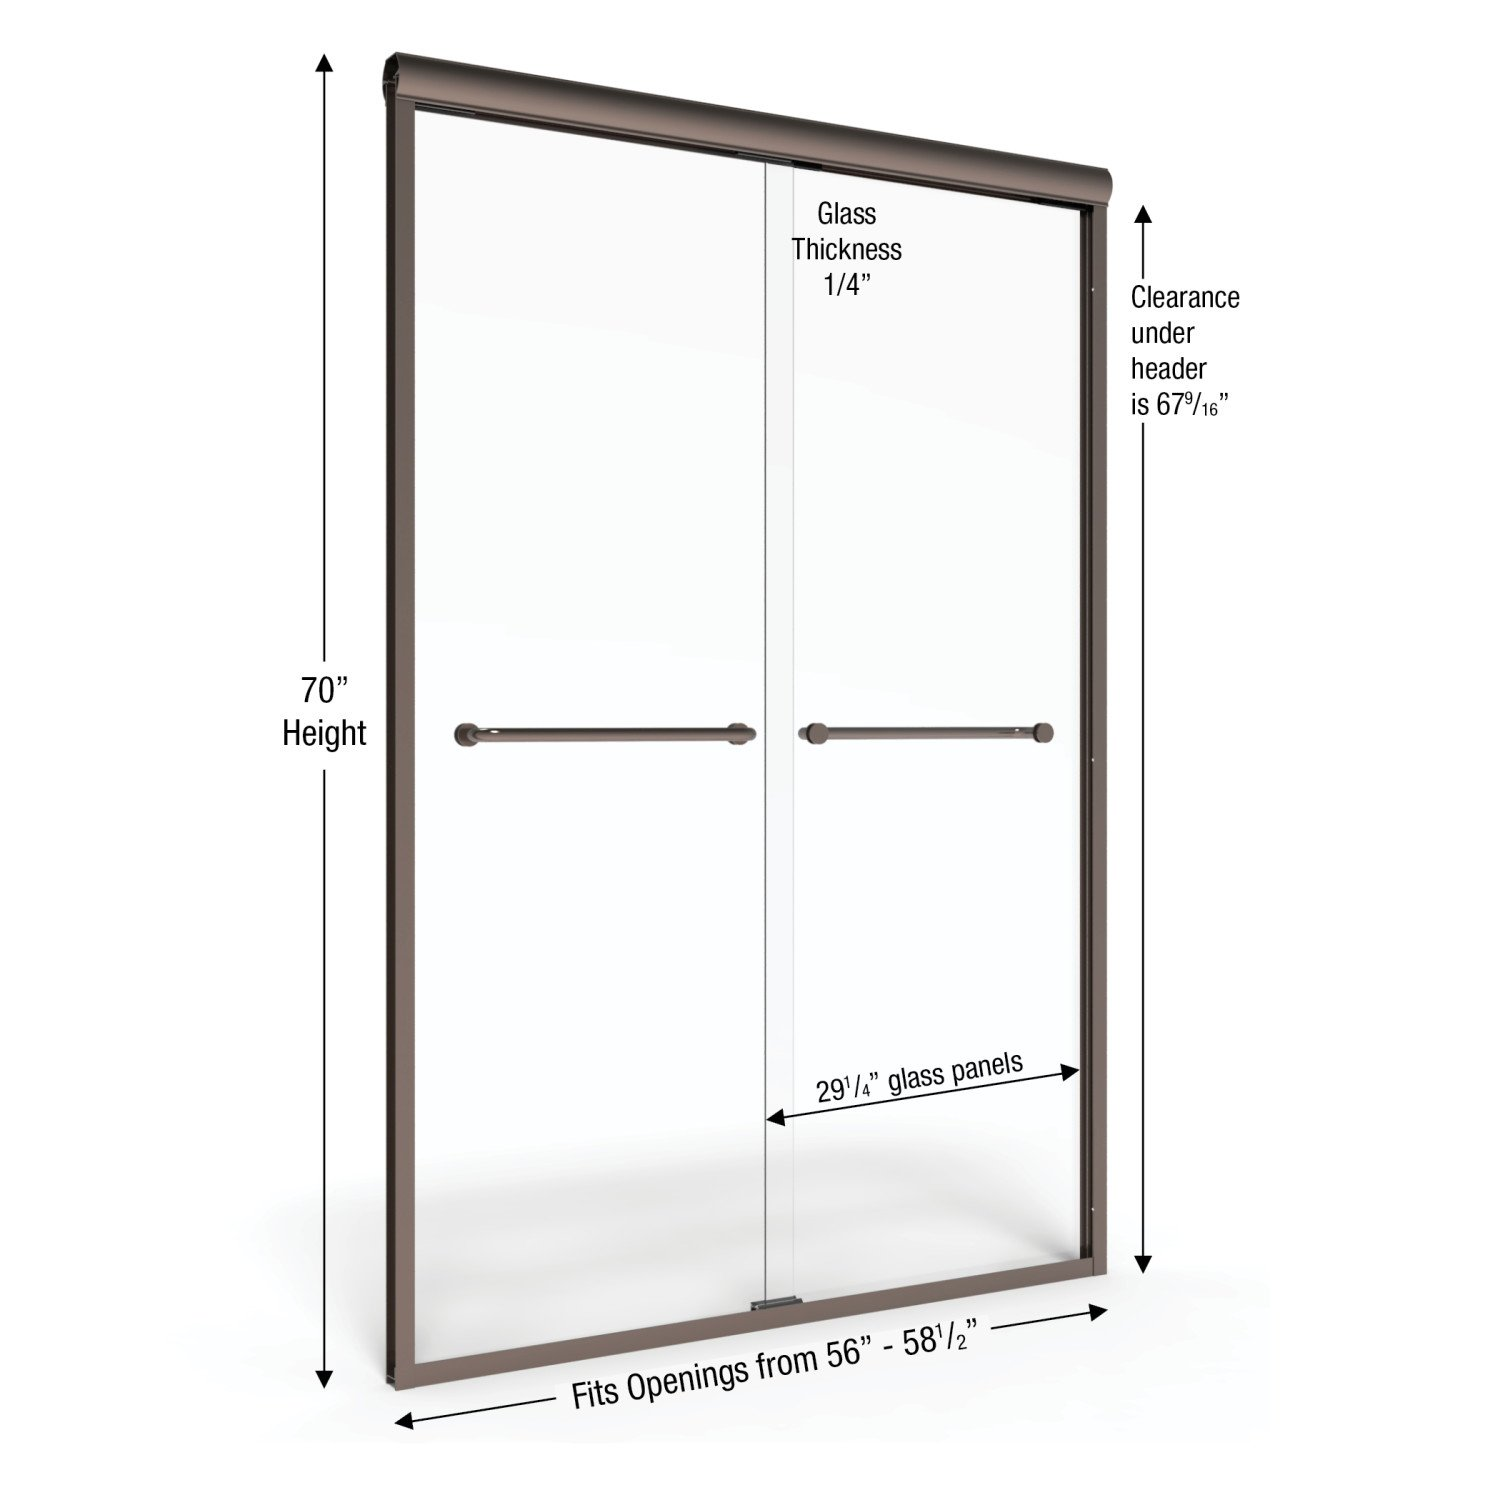 Basco Infinity Frameless Sliding Shower Door Fits 56 58 5 inch